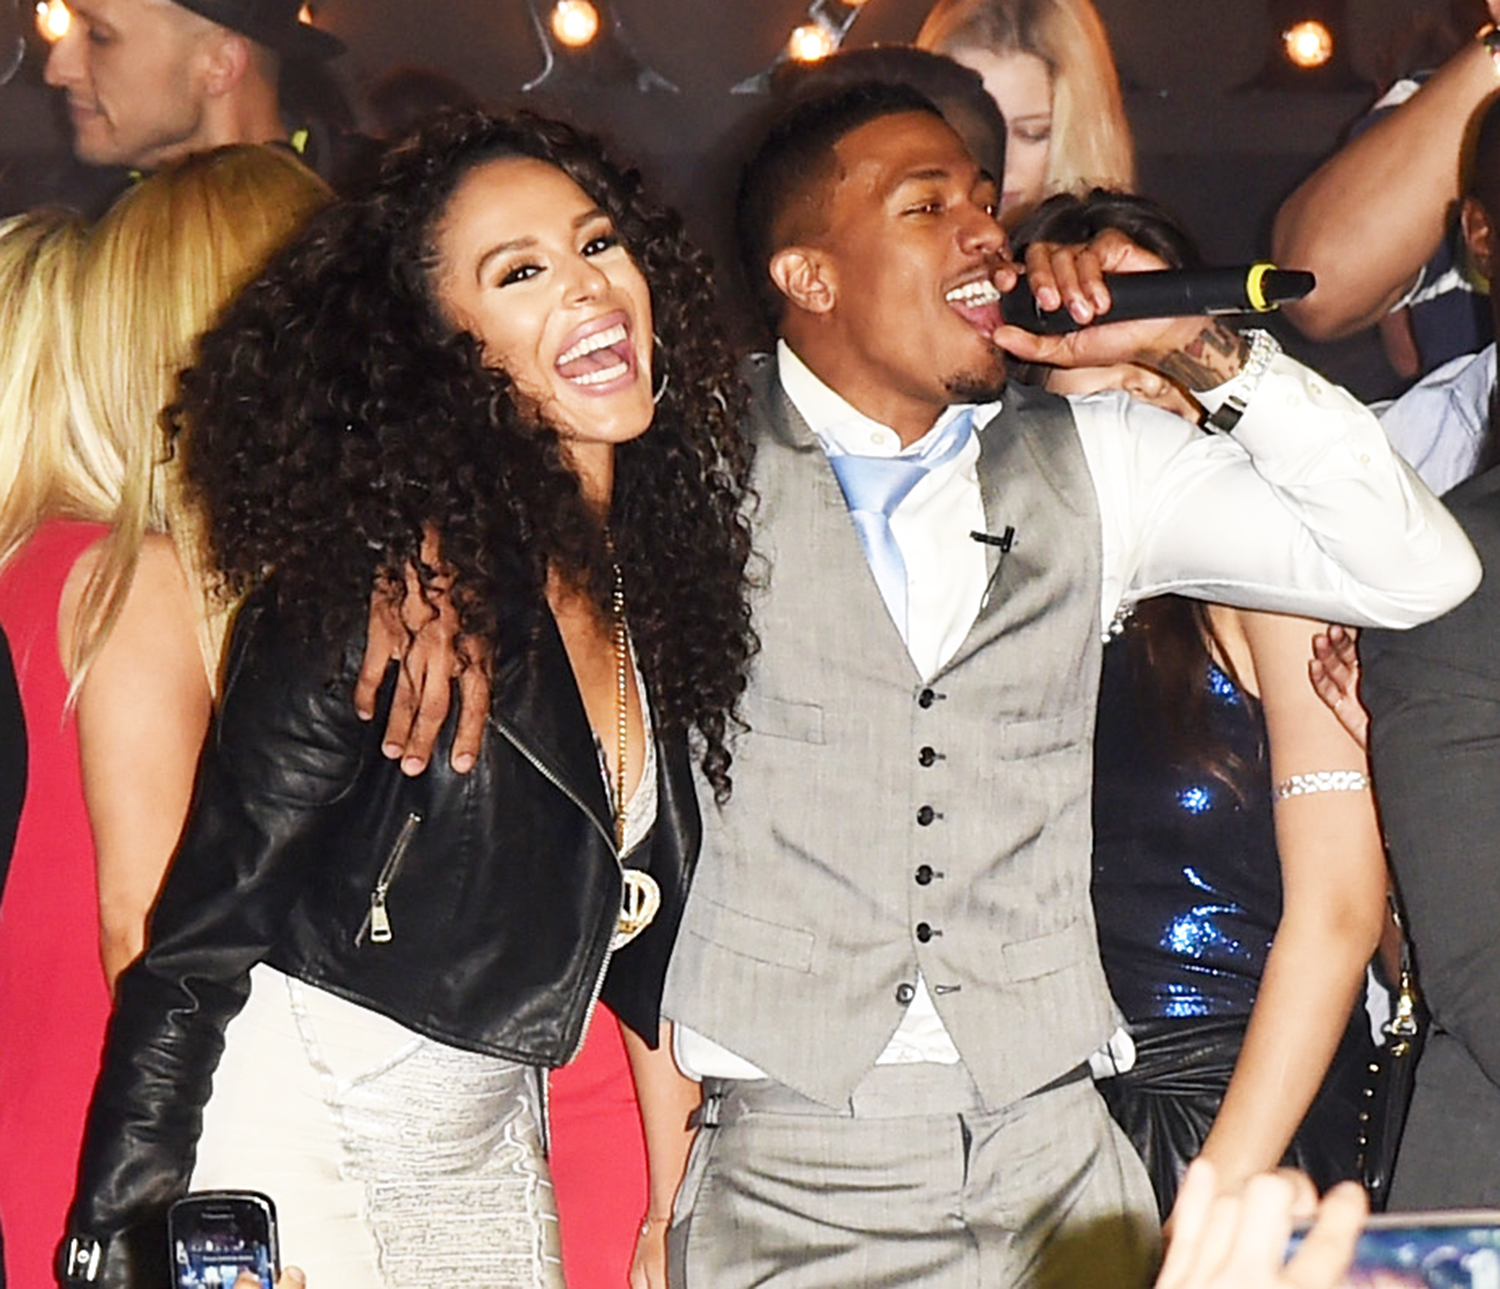 Brittany Bell and Nick Cannon perform onstage during the Maxim Party on January 31, 2015 in Phoenix, Arizona.